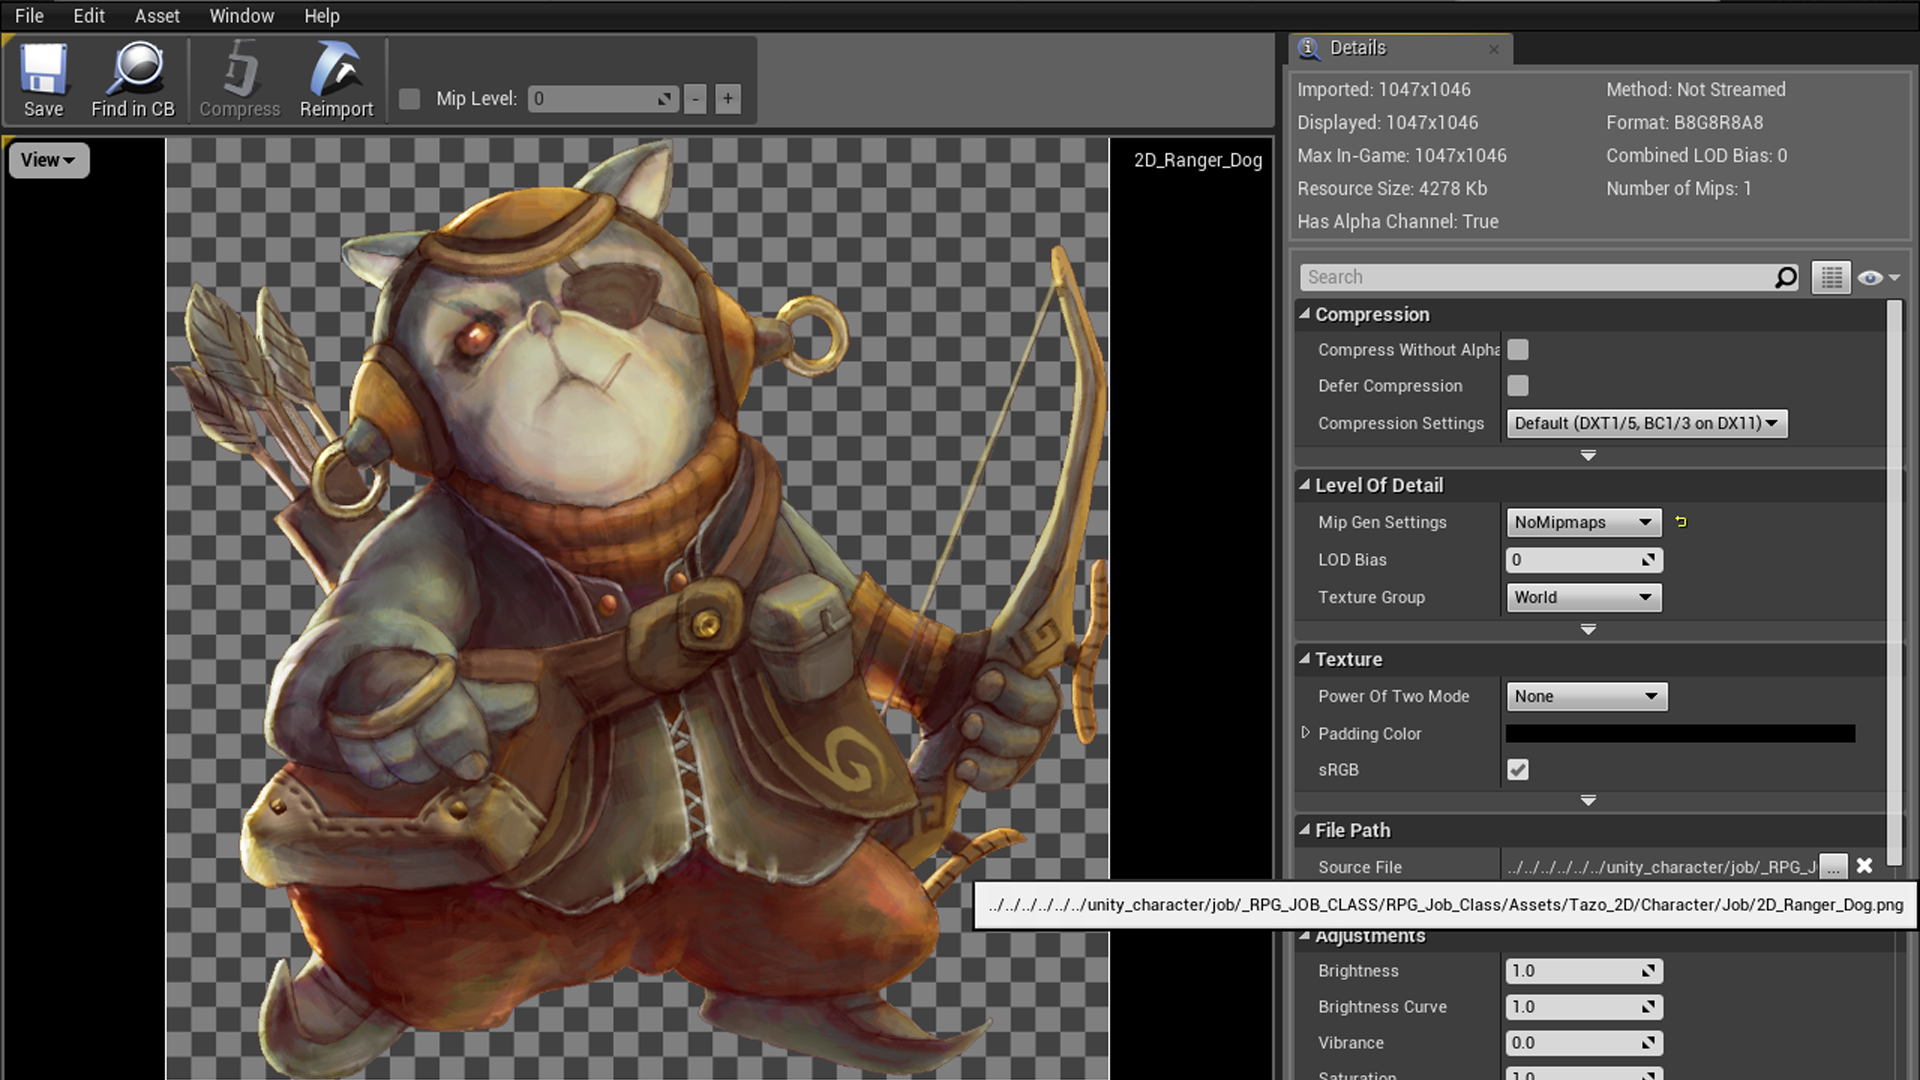 RPG Job Class Character Icon (Animal) by Mr Game in 2D Assets - UE4